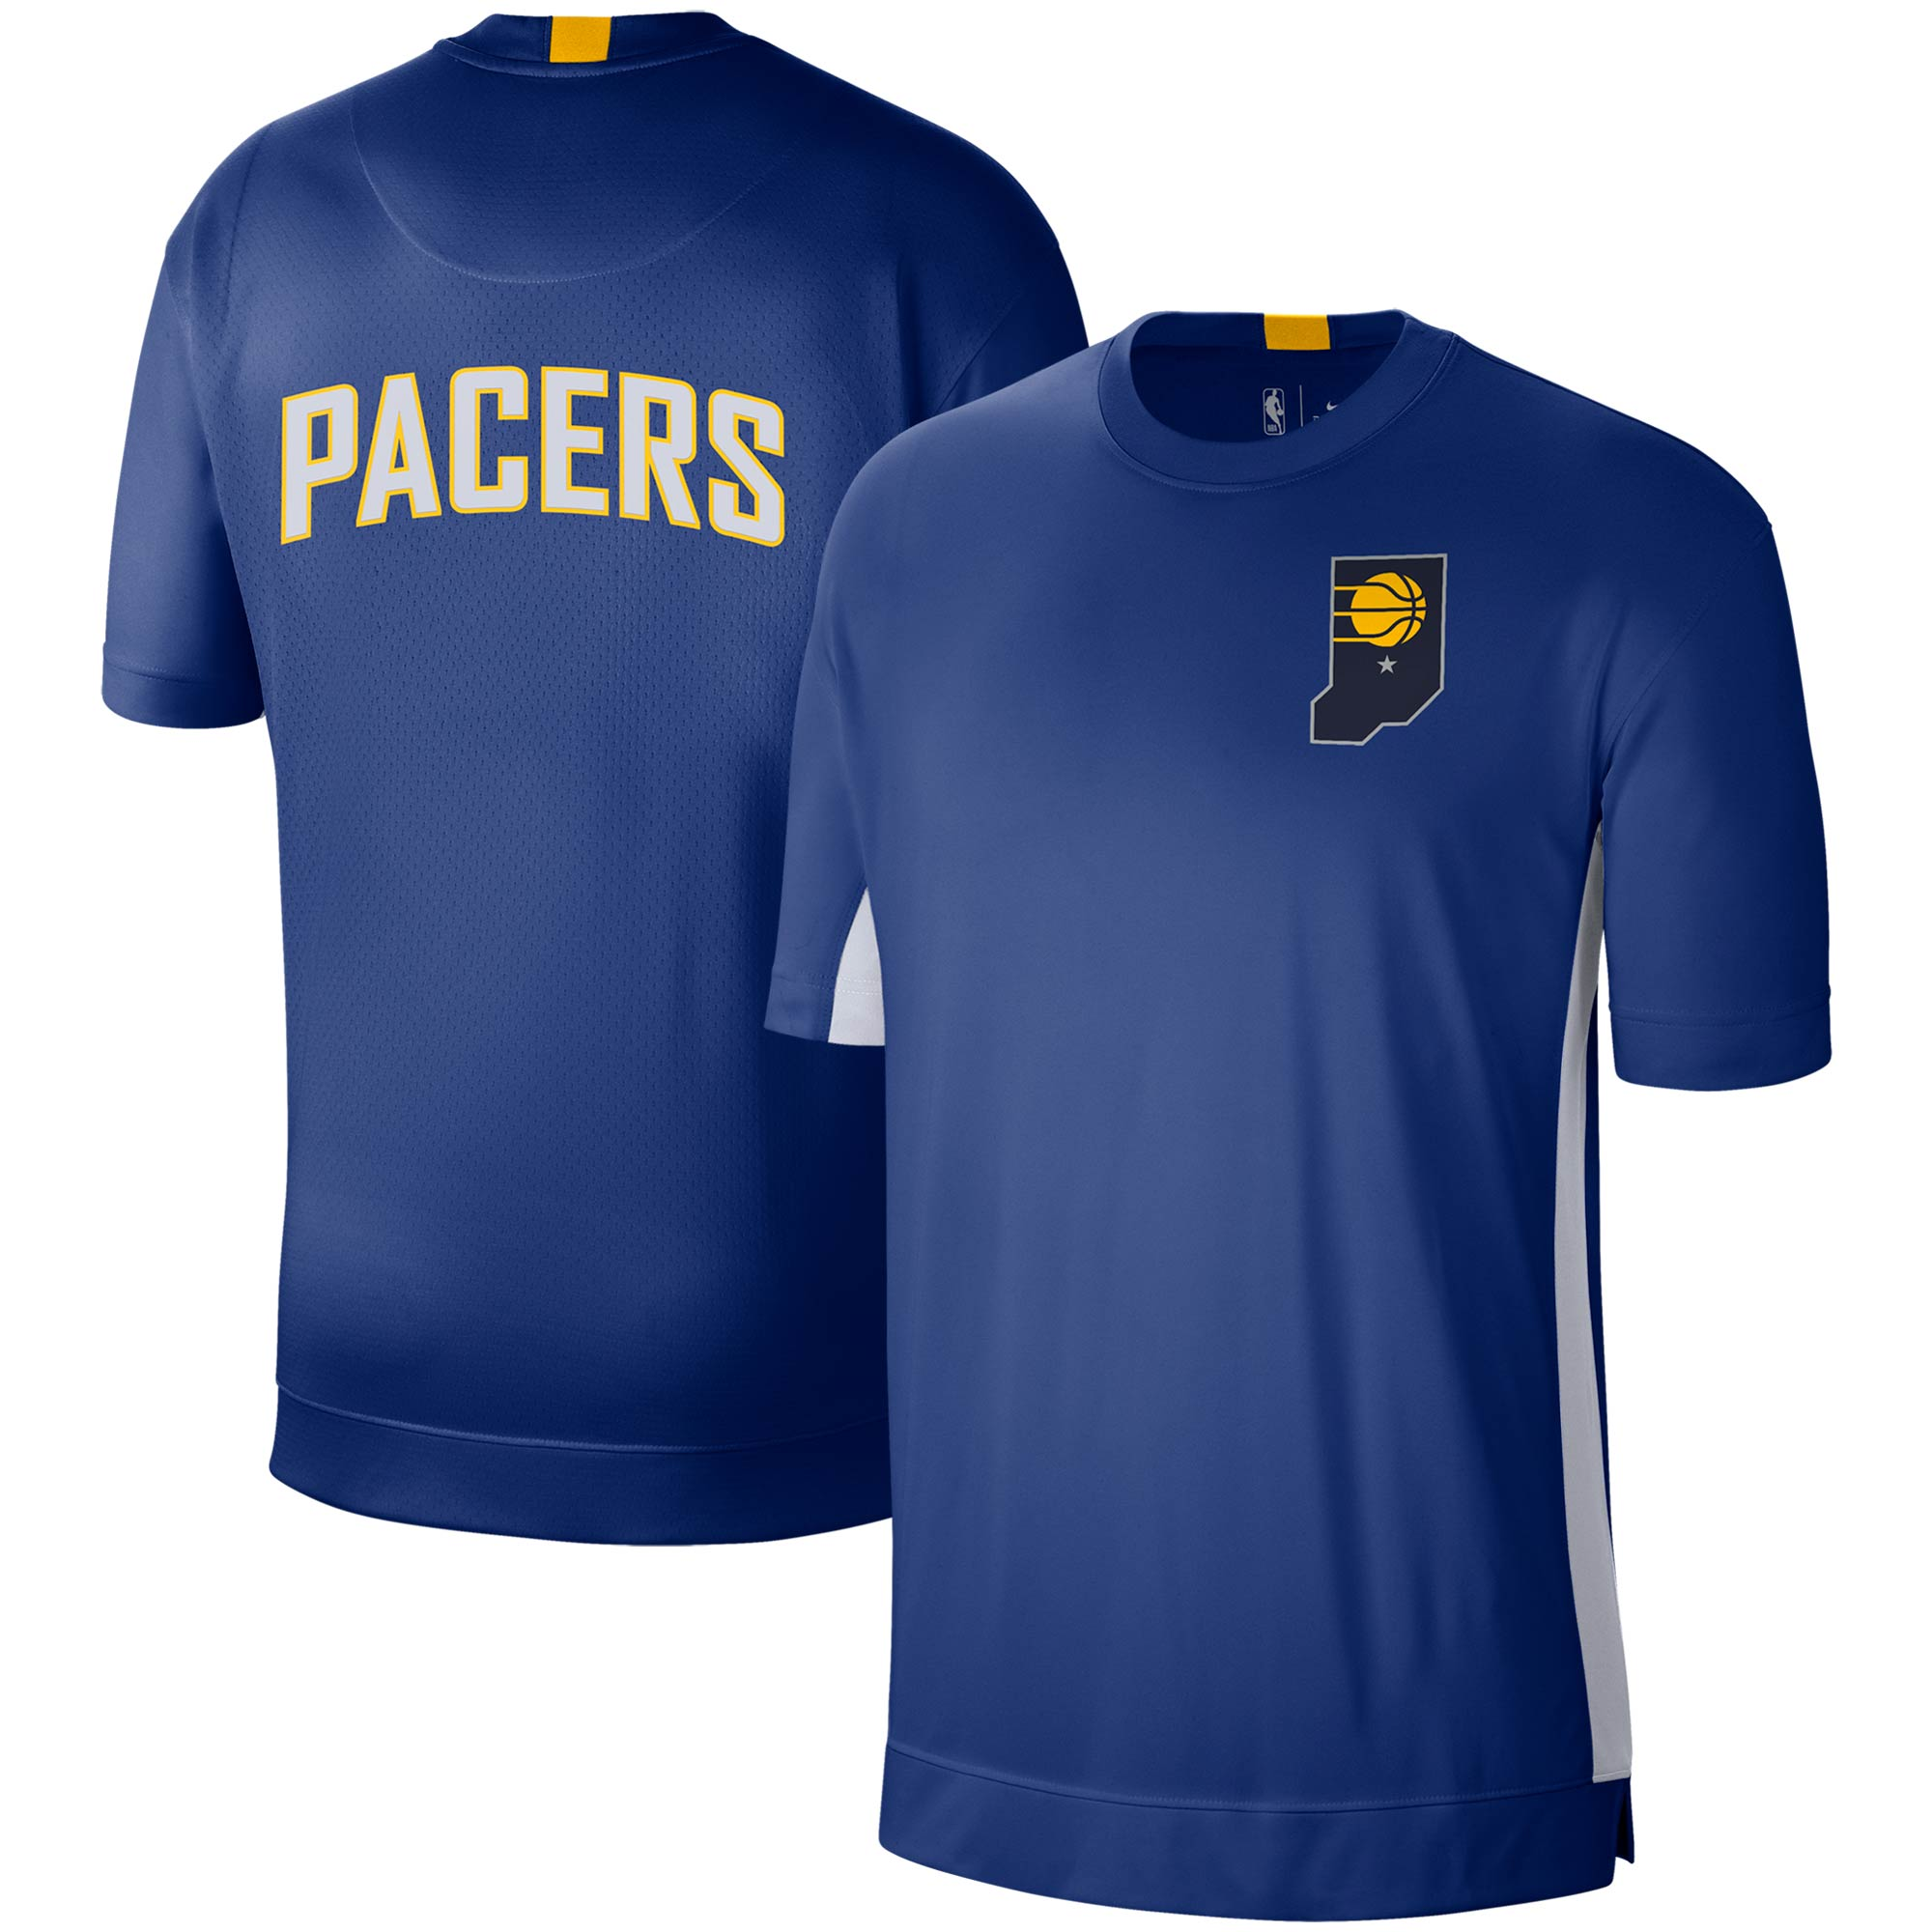 Indiana Pacers Nike City Edition Shooting Performance T-Shirt - Blue/White